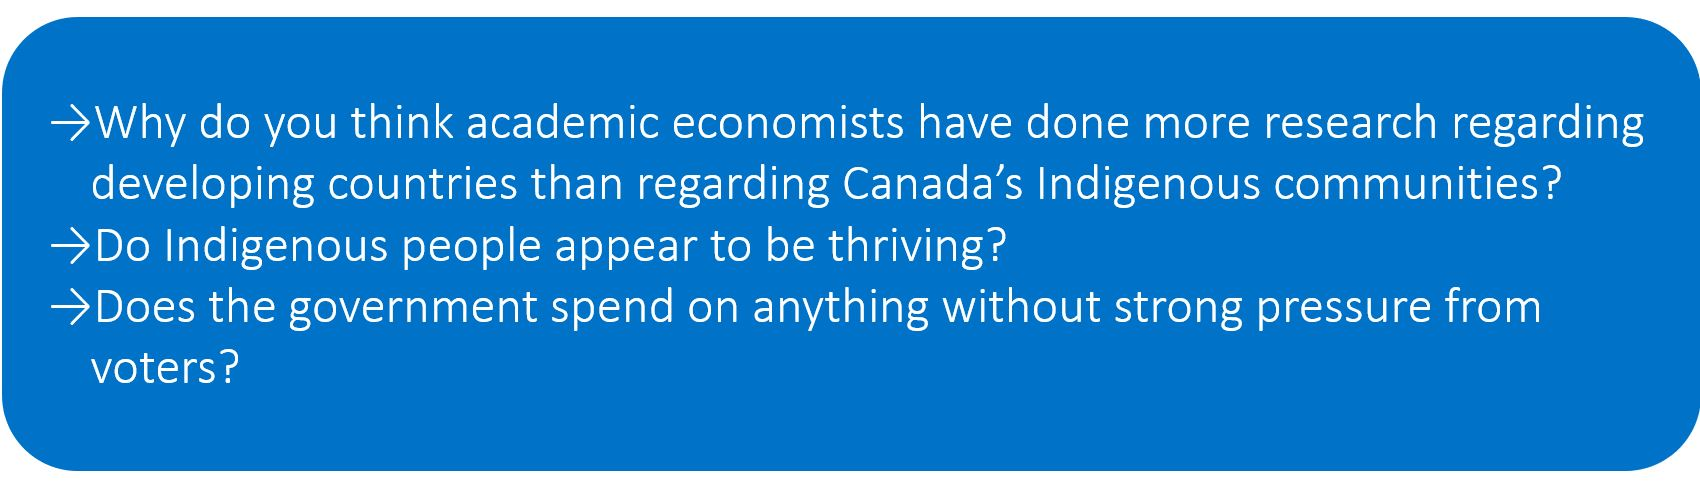 Why do you think academic economists have done more research regarding developing countries than regarding Canada's Indigenous communities? Do Indigenous people appear to be thriving? Does the government spend on anything without strong pressure from voters?